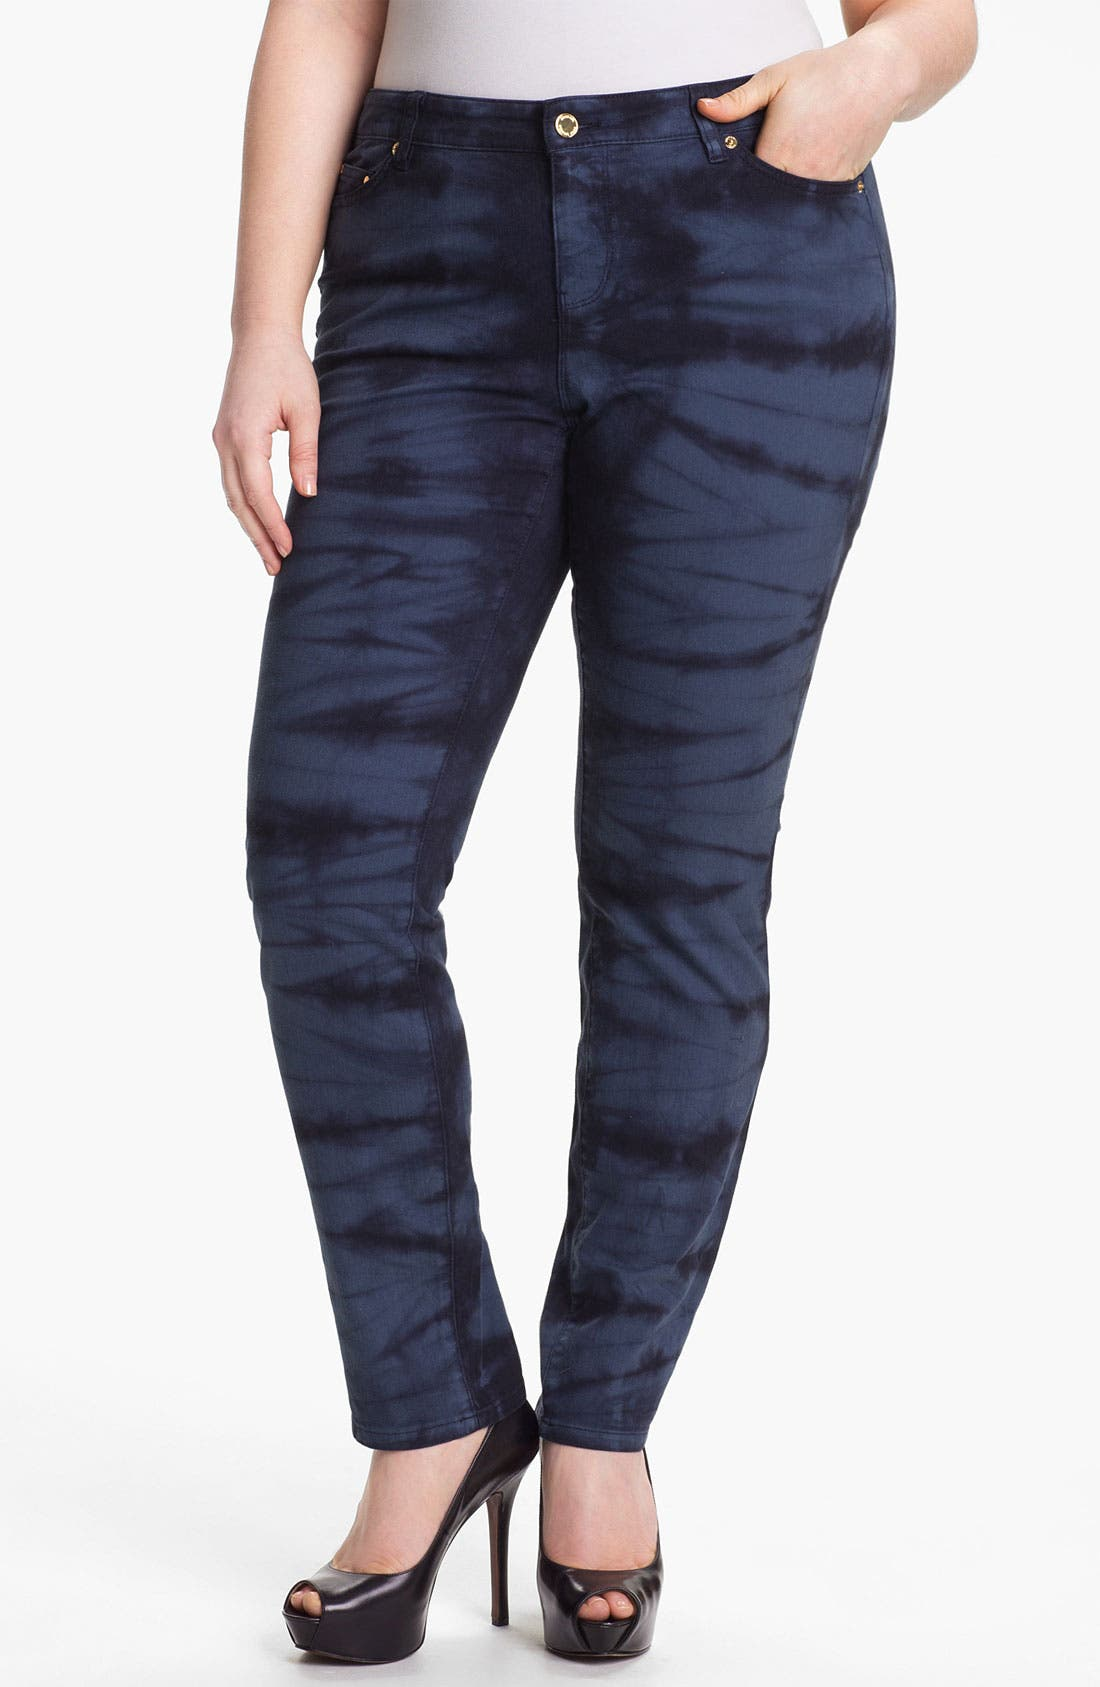 Alternate Image 1 Selected - MICHAEL Michael Kors Print Skinny Jeans (Plus) (Online Only)